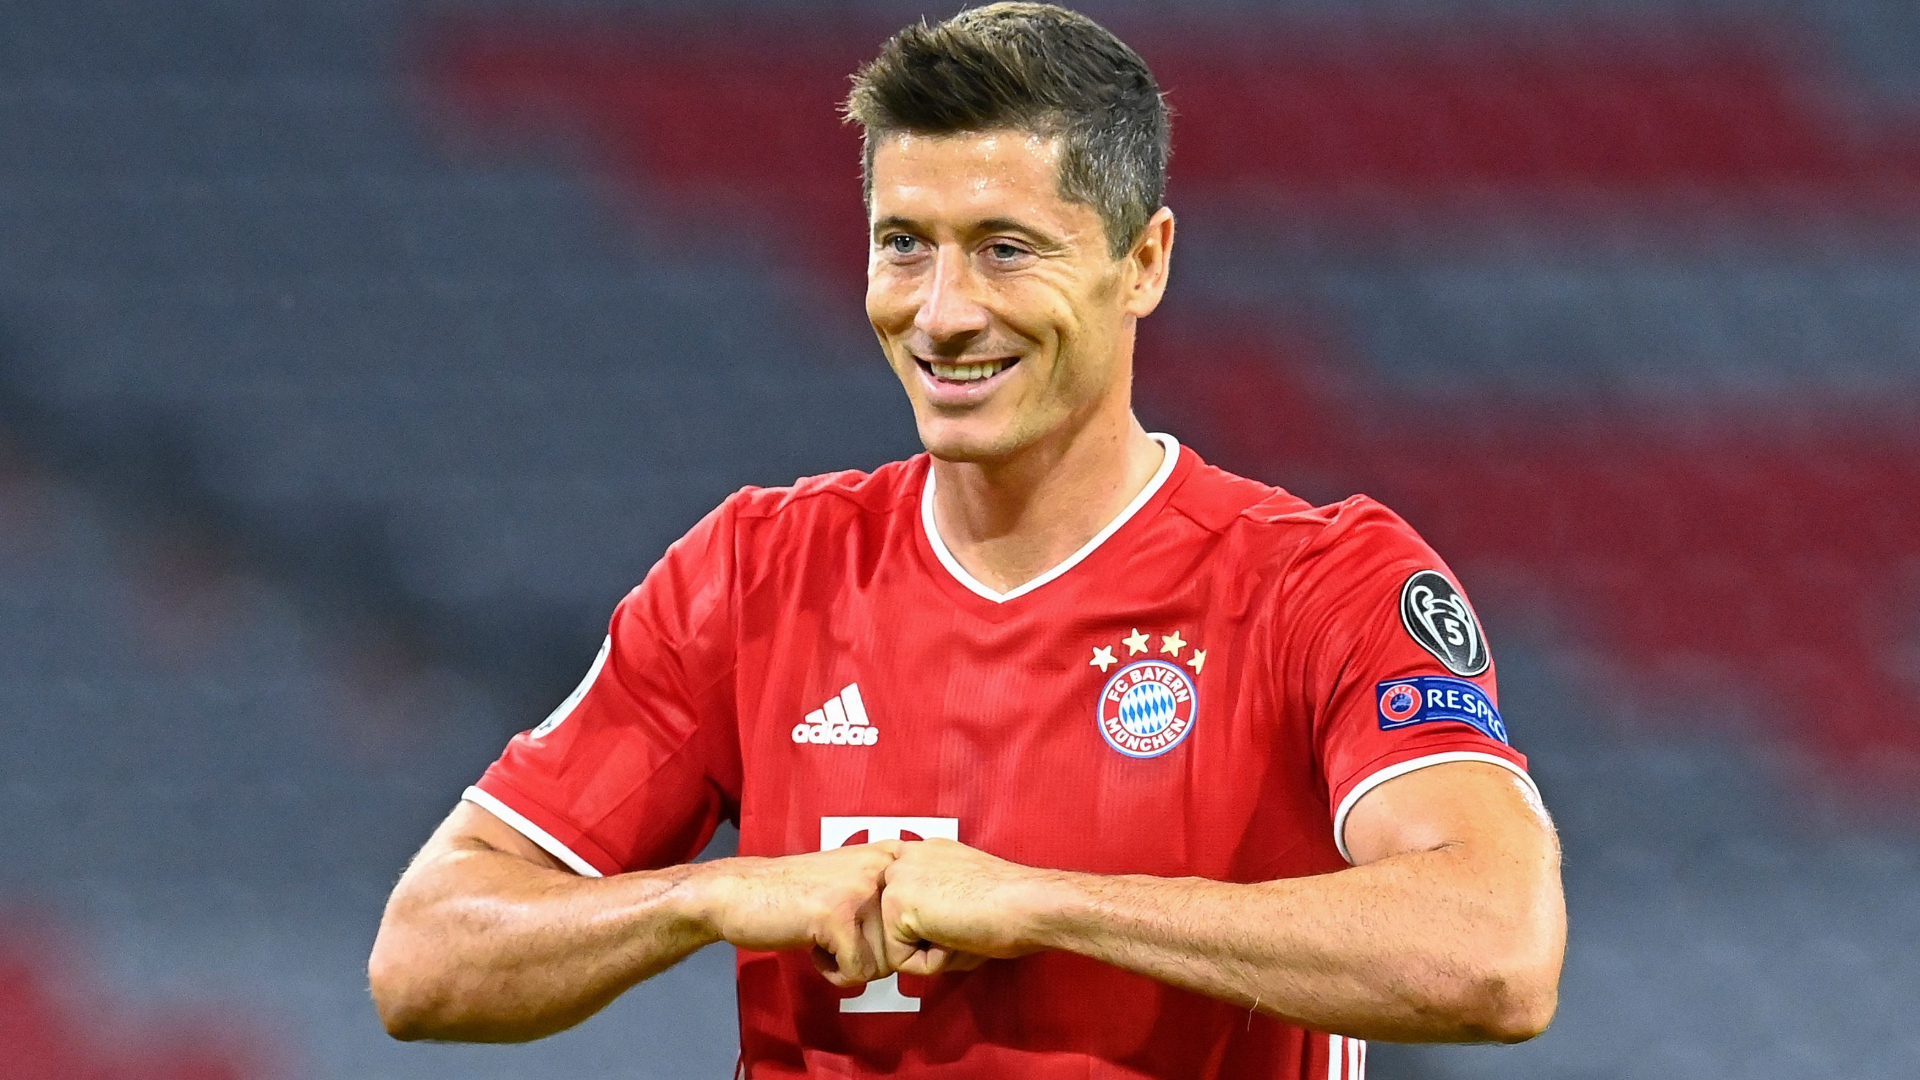 Lewandowski open to ending career at Bayern Munich as he sees 'years' left at the top